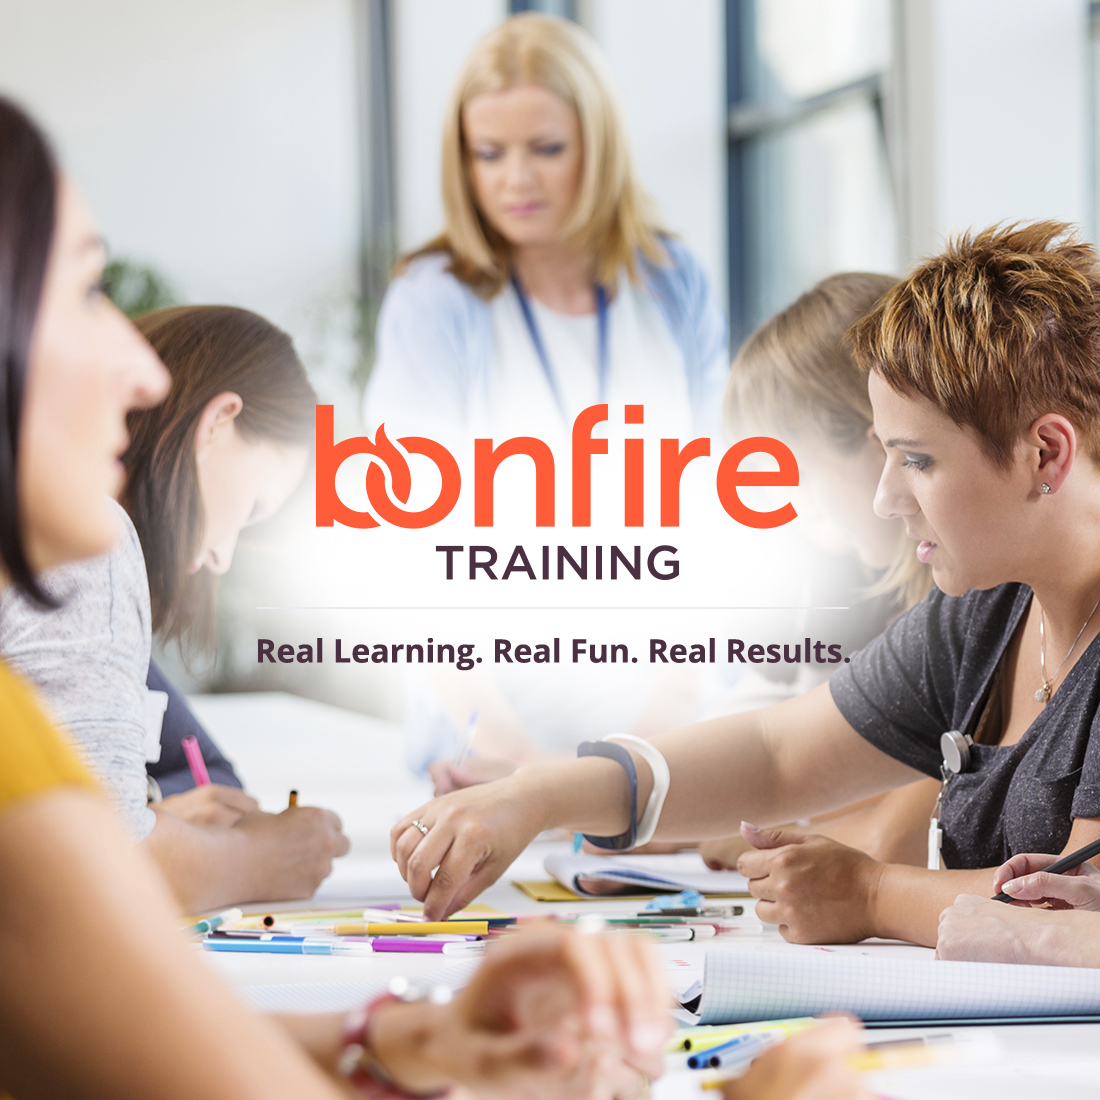 Bonfire Training - Web and Print Design